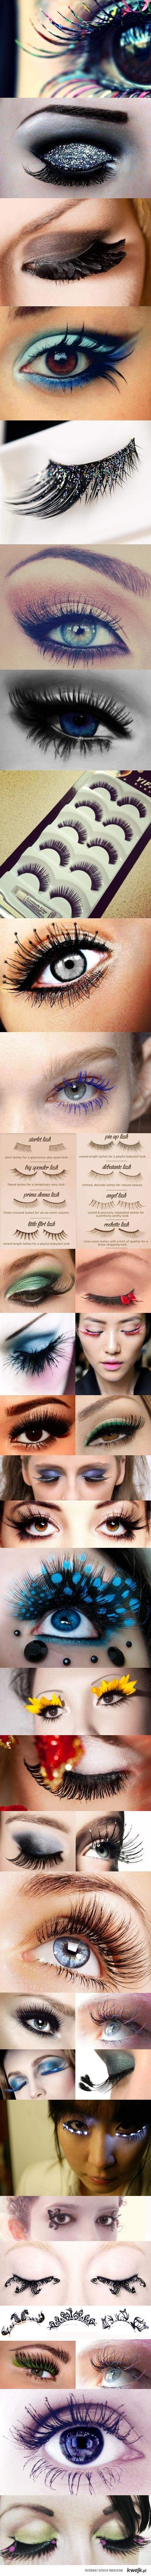 : Crazy Eyelashes, False Eyelashes, Eye Makeup, Eye Lashes, Fake Eyelashes, Beautiful Eyes, Costume Lashes, False Lashes, Eyes Makeup